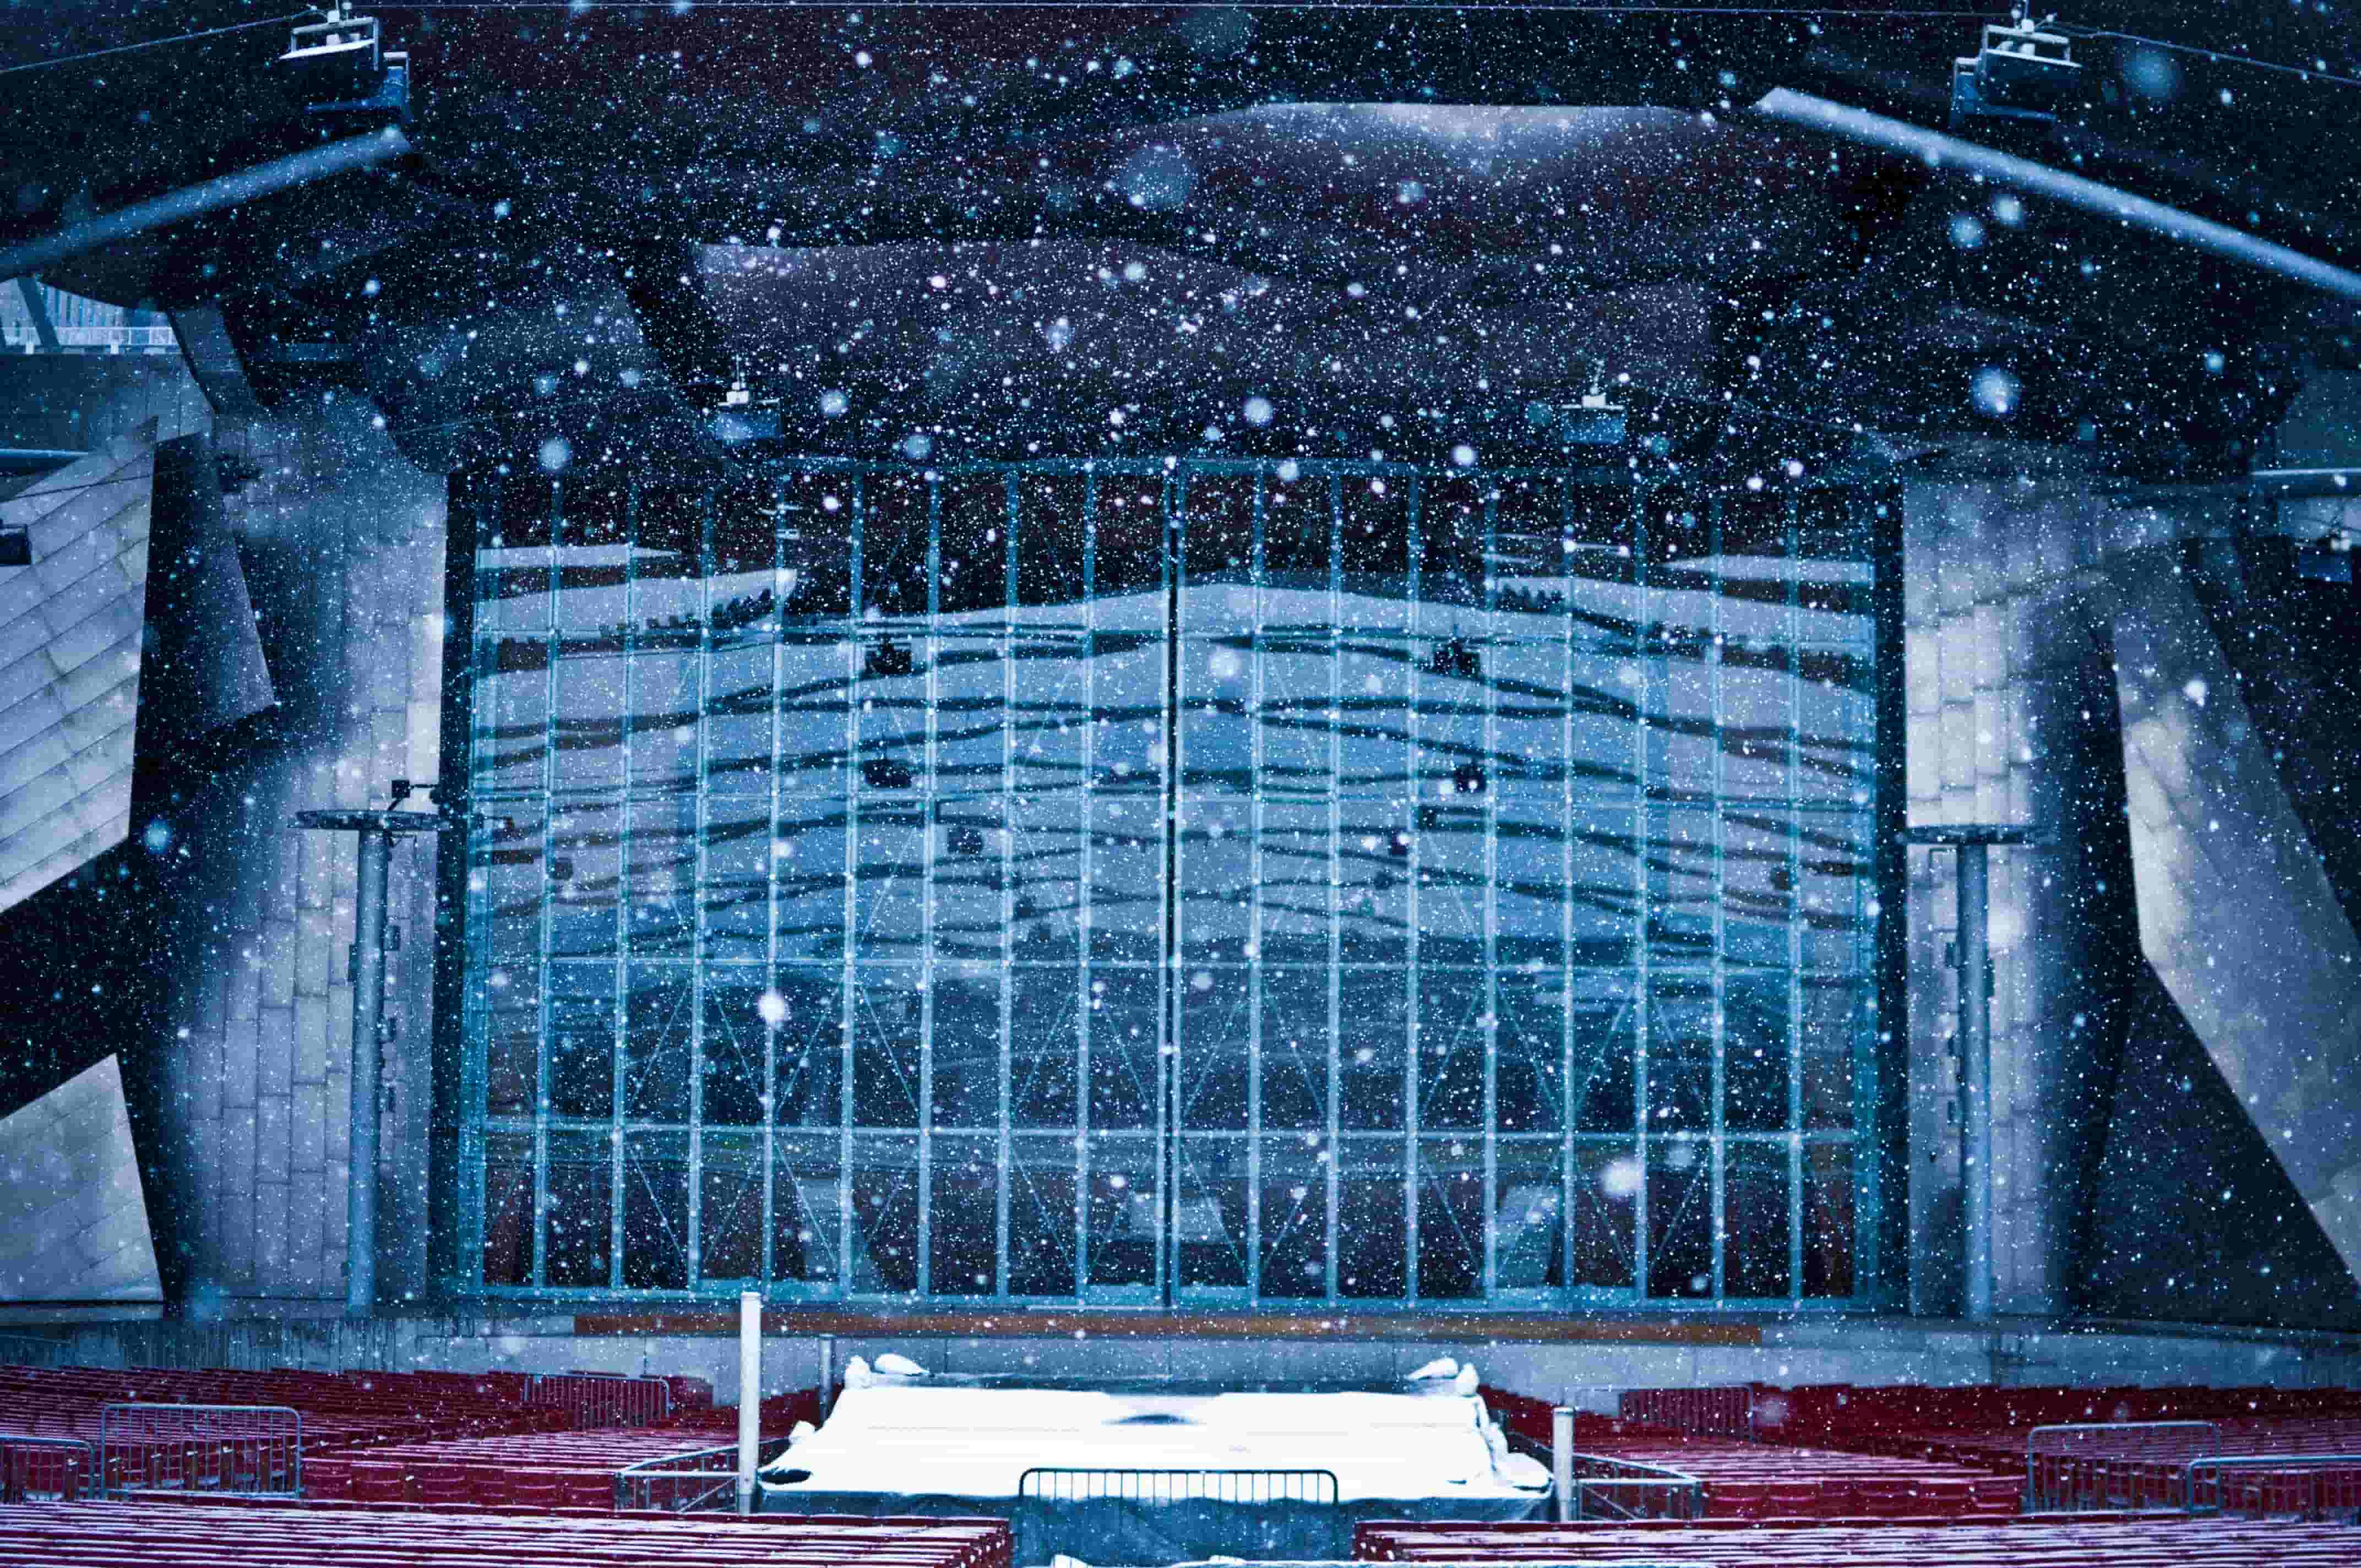 The stage of Jay Pritzker Pavilion in Chicago's Millennium Park in winter